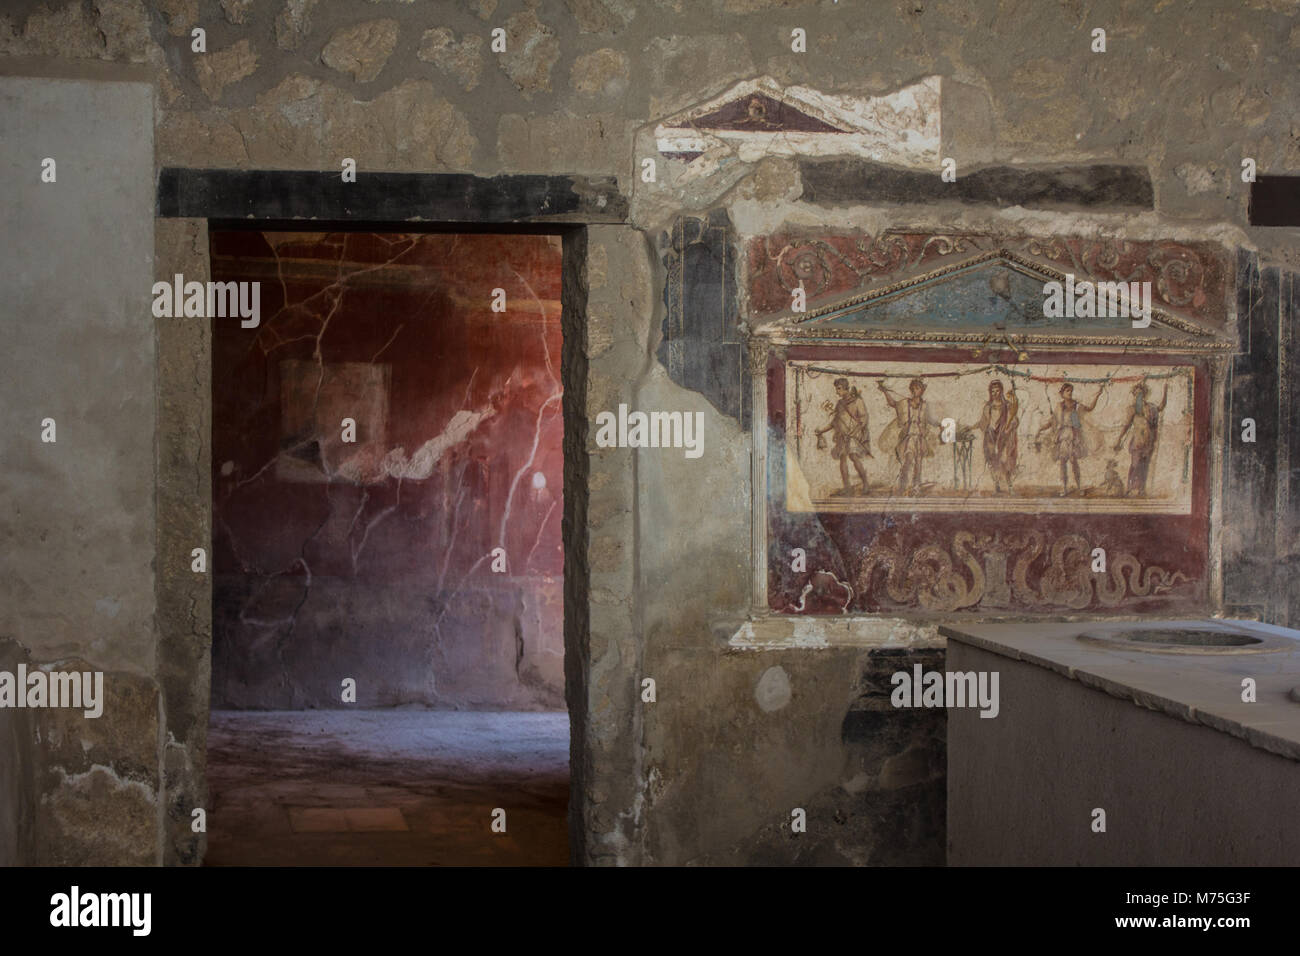 Mural On The Wall Inside A House In Pompeii, Italy